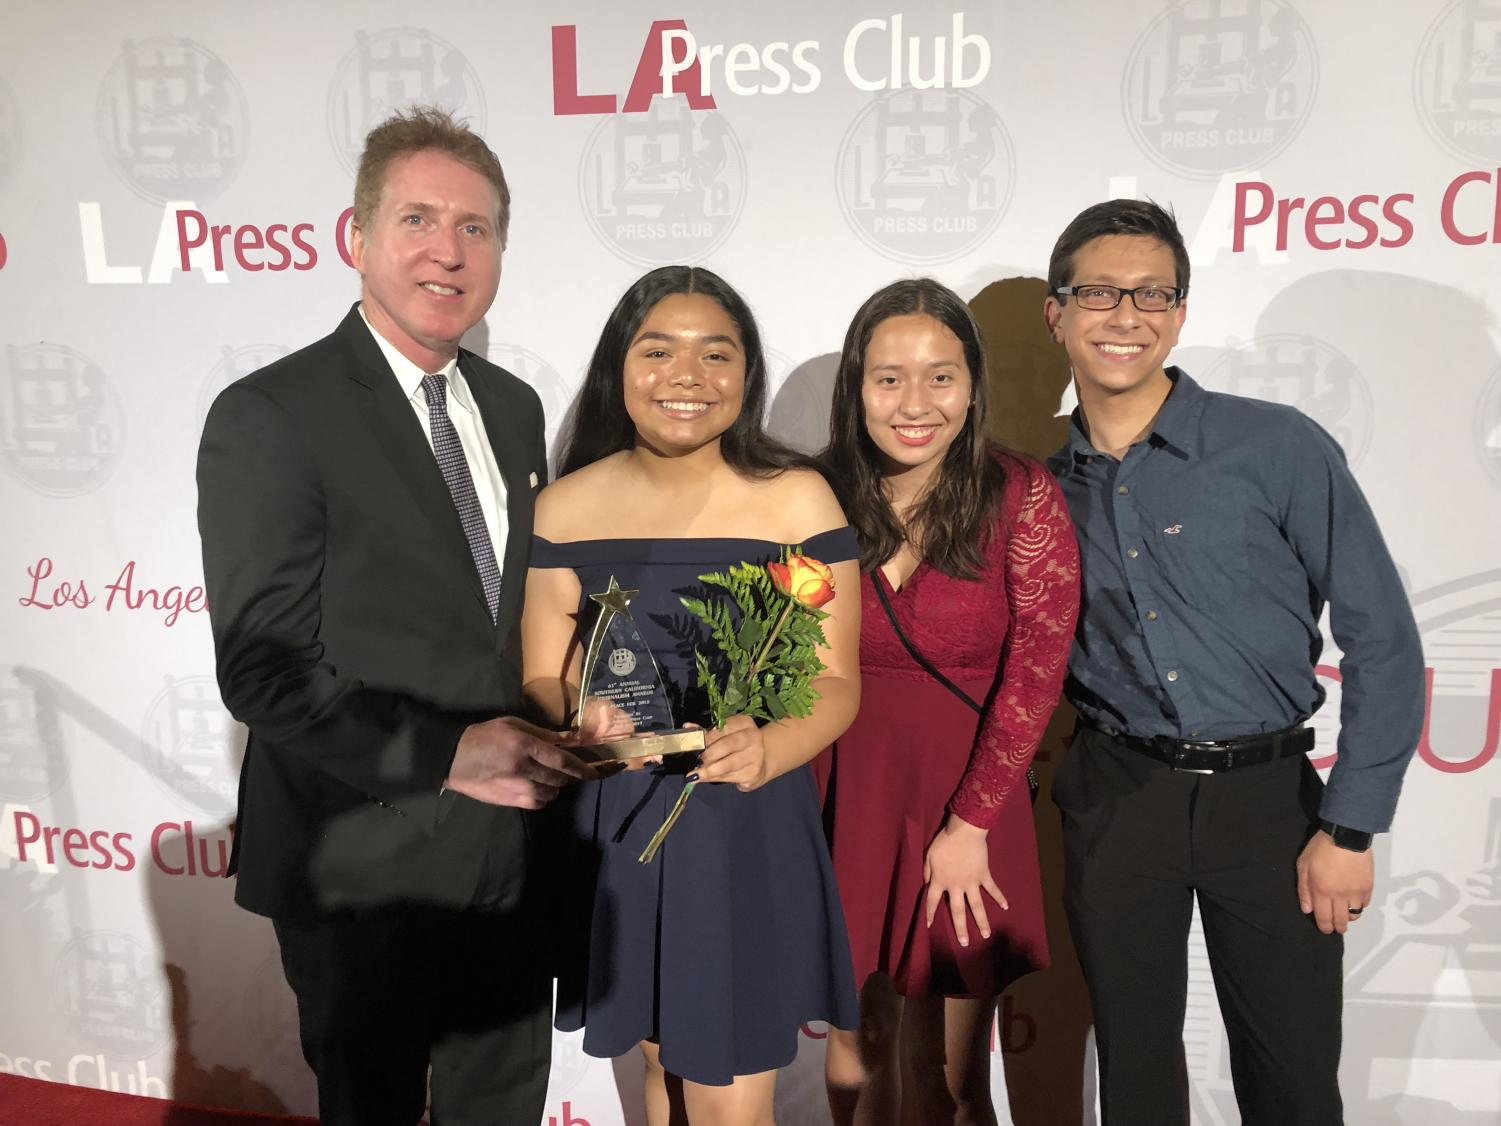 The+Los+Angeles+Press+Club+President+Chris+Palmeri+joins+former+Print+Editor-in-Chief+Kirsten+Cintigo%2C+Staff+Writer+Itzel+Luna+and+former+Online+Editor-in-Chief+Michael+Chidbachian+after+The+Pearl+Post+was+named+%22Best+High+School%22+newspaper.